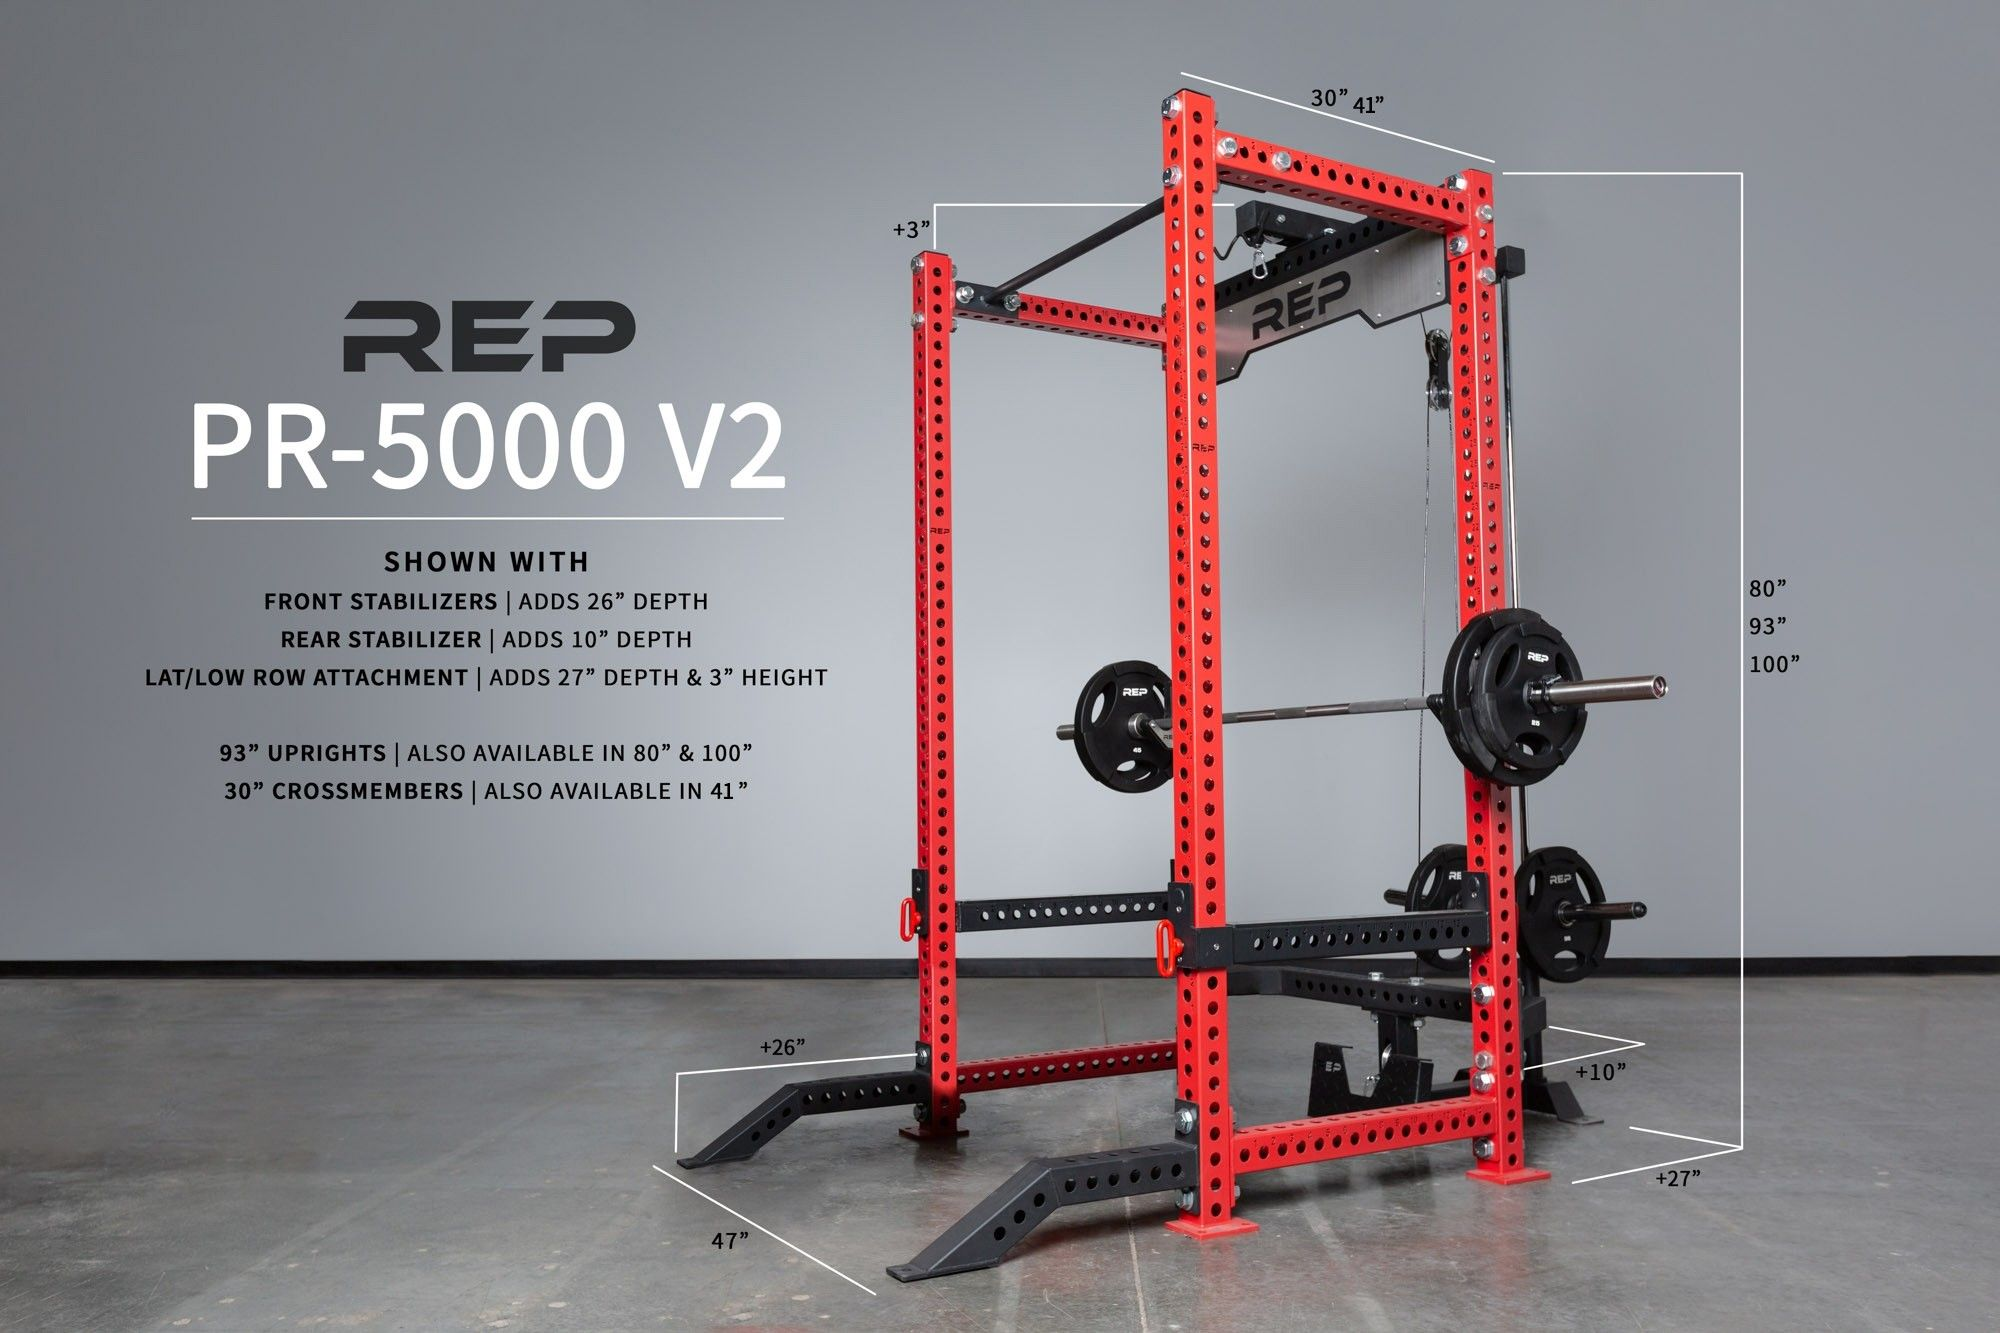 Power racks from rep fitness for your home gym or garage